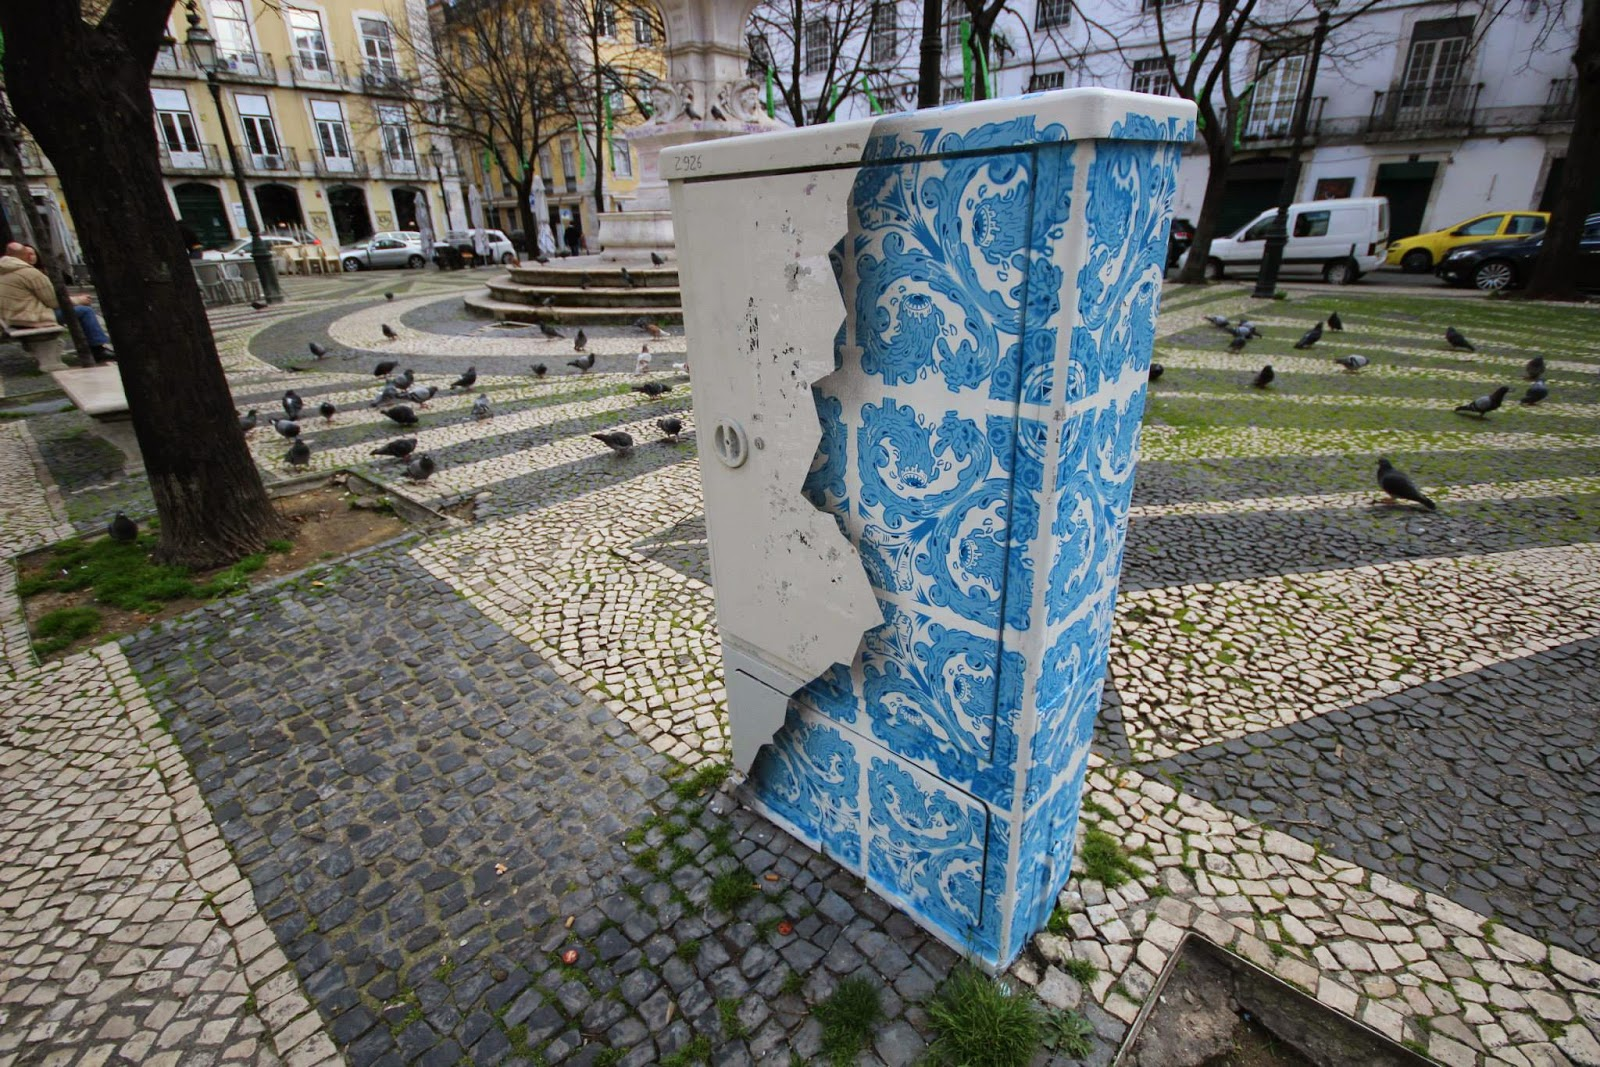 Portuguese artist Add Fuel recently took part in the Trampolins Gerador project organized by Mistaker Maker @ Largo de São Paulo in Lisbon.